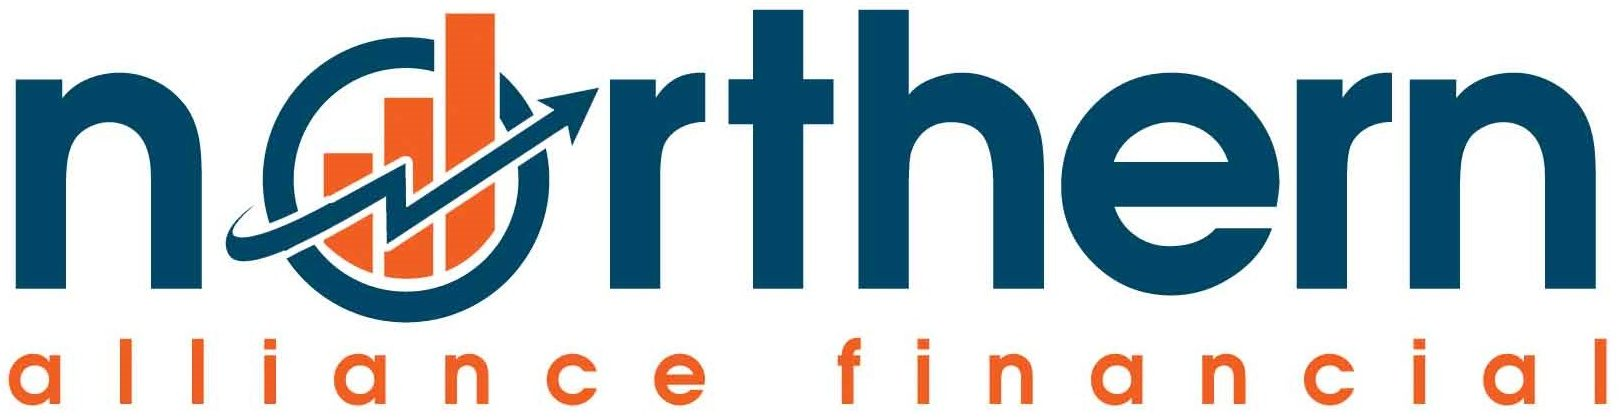 Northern Alliance Financial